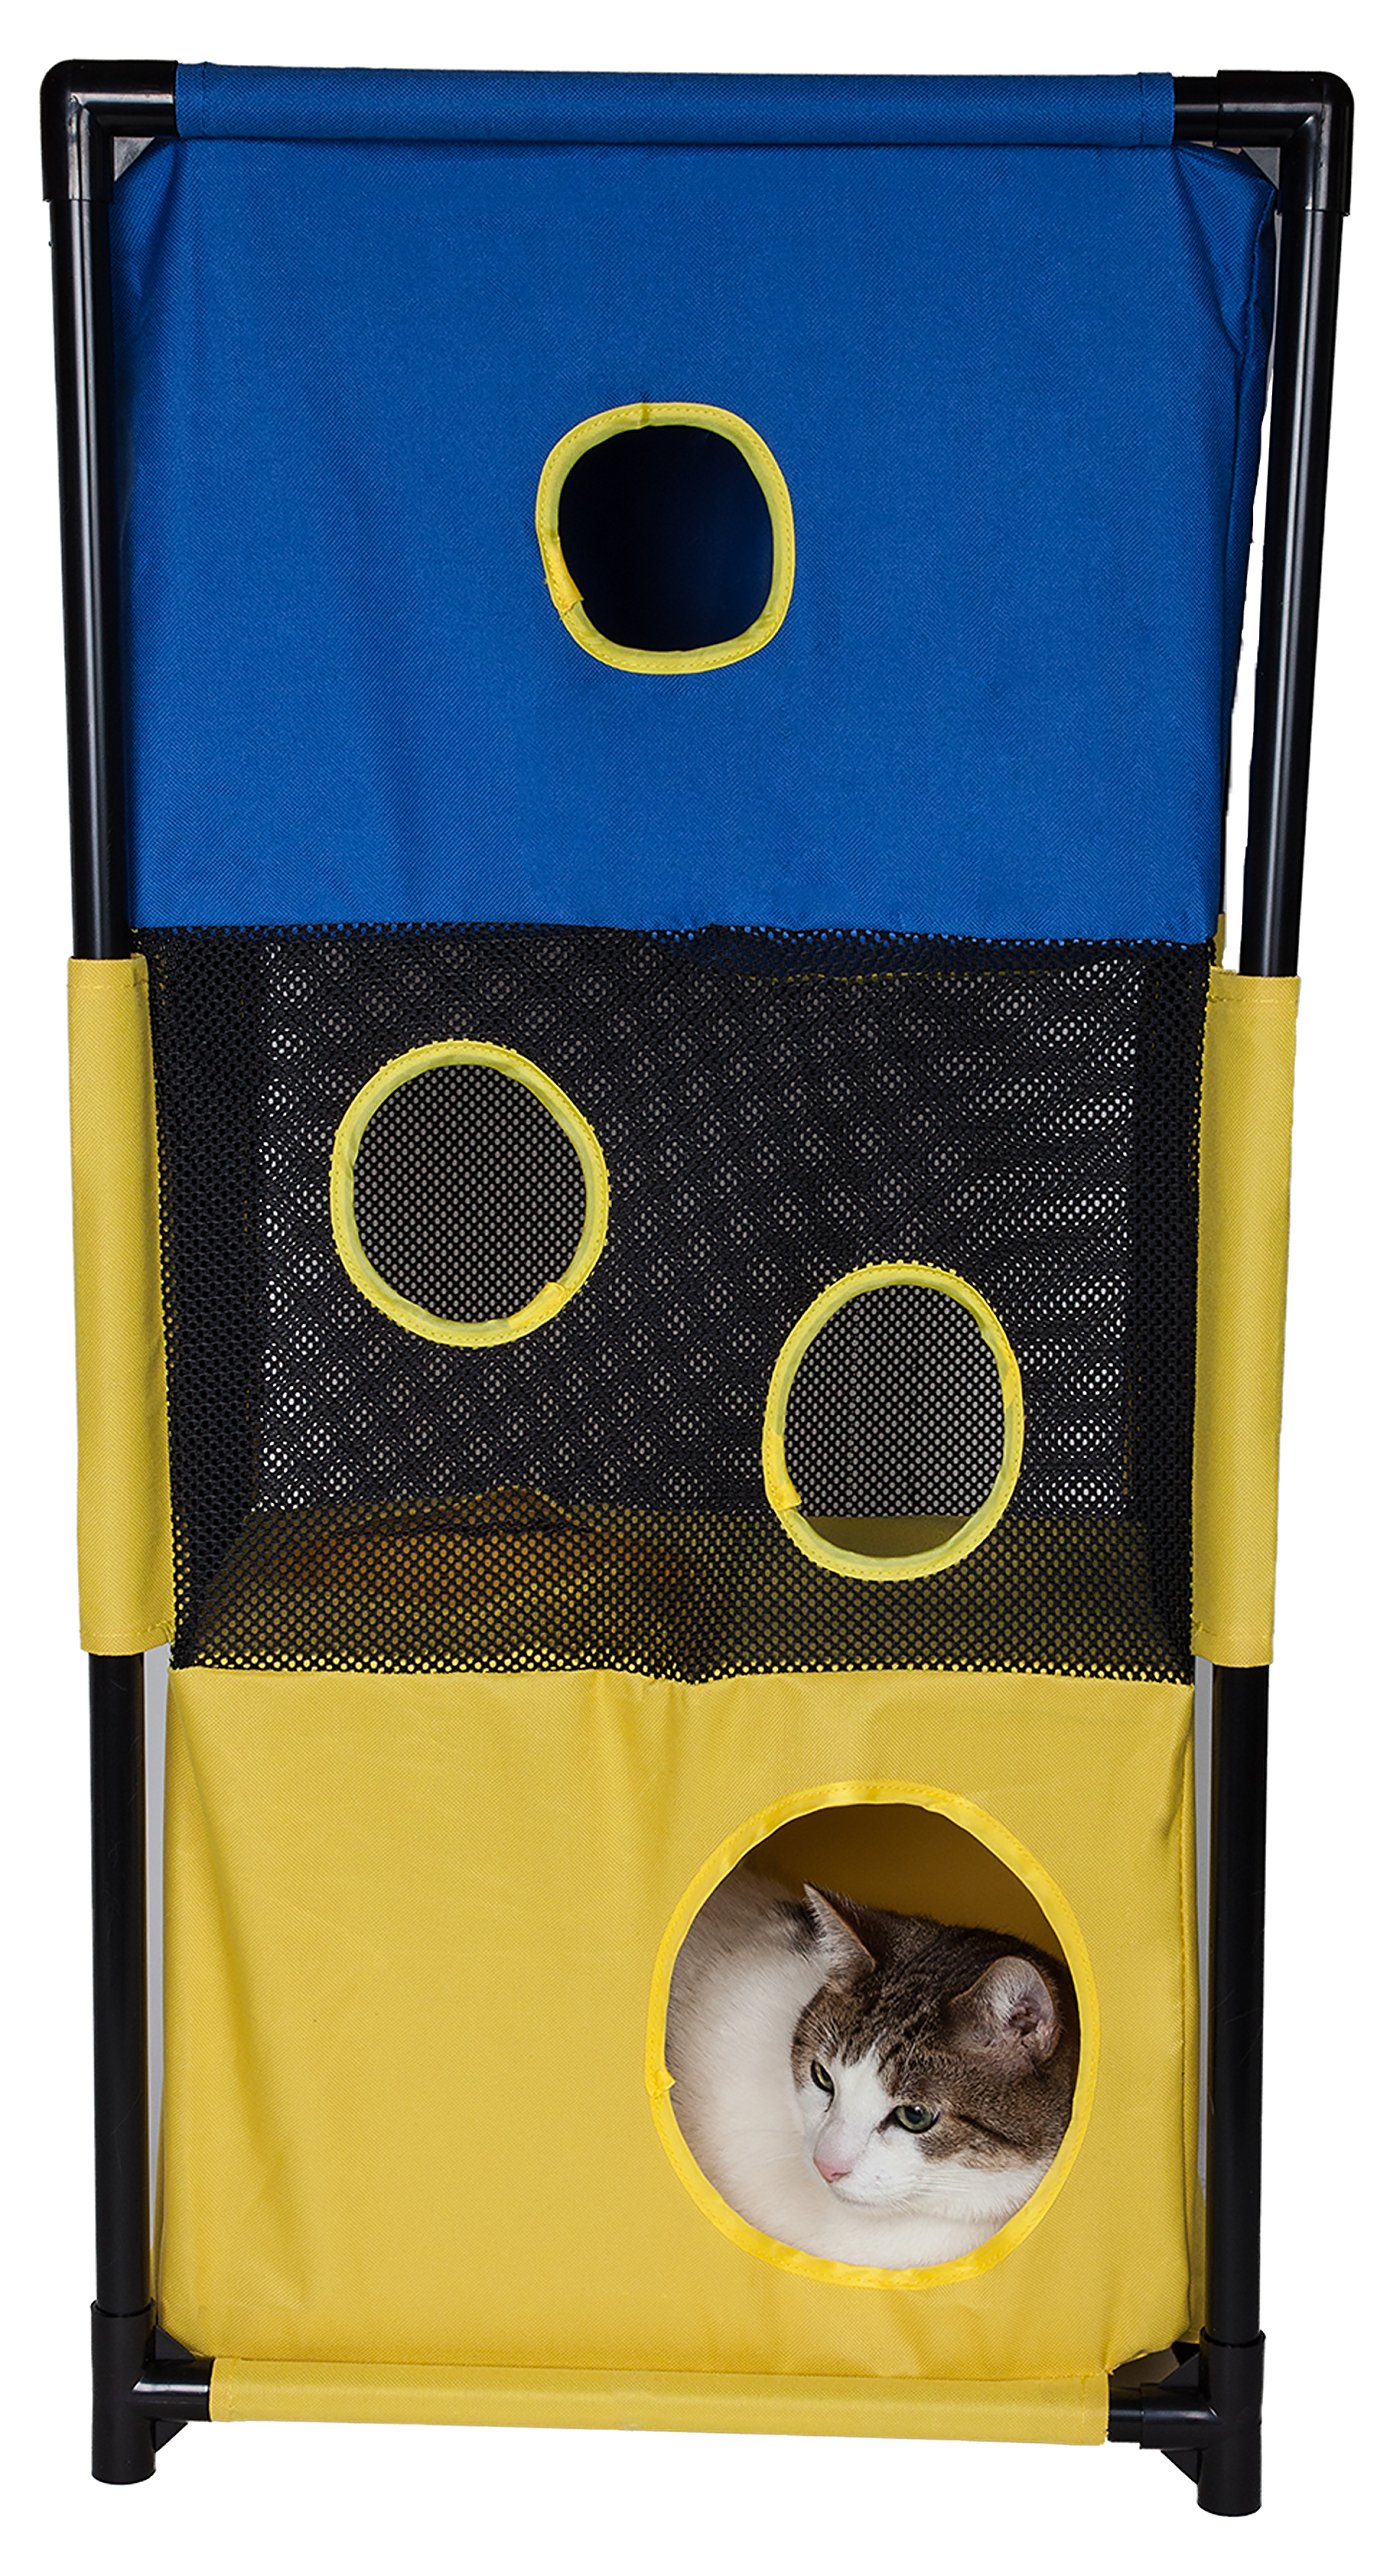 Pet Life Kitty-Square' Collapsible Travel Interactive Kitty Cat Tree Maze House Lounger Tunnel Lounge, One Size, Yellow and Blue